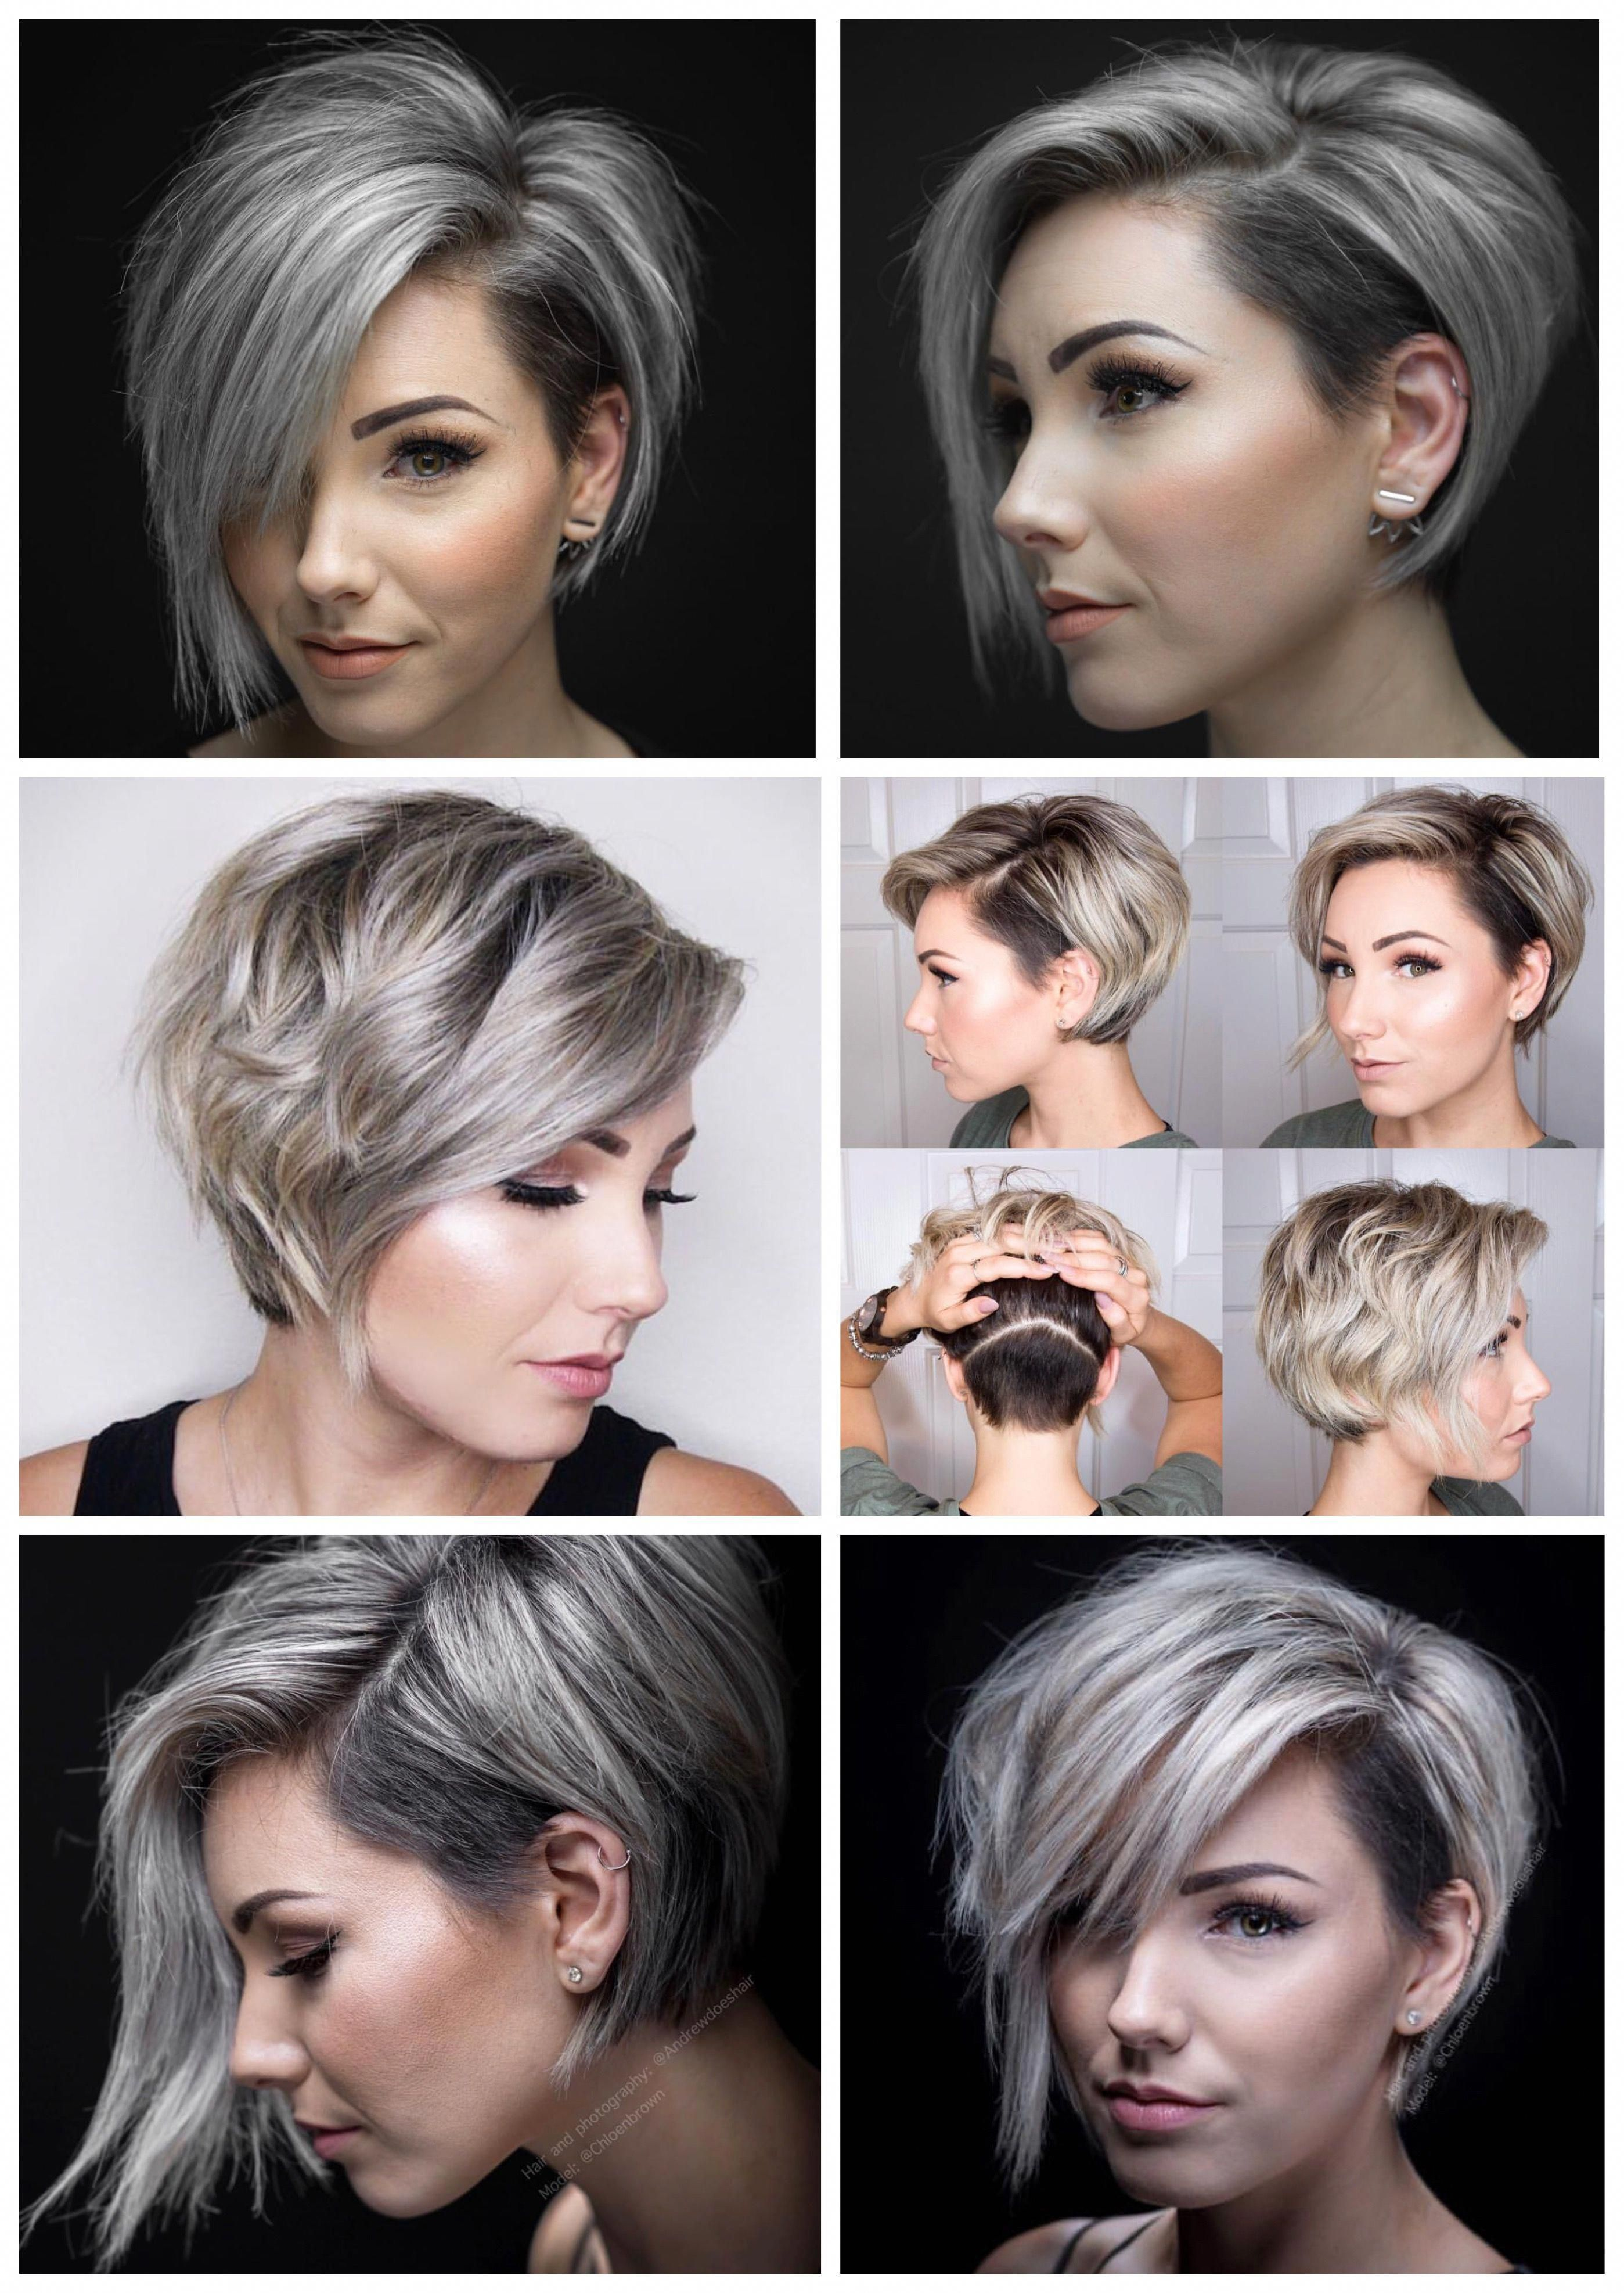 Asymmetrical Short With Undercut Young Salts Medium Silver Withbangs Natural Shorthairbobpixie Bob Hairstyles Hair Styles Thick Hair Styles